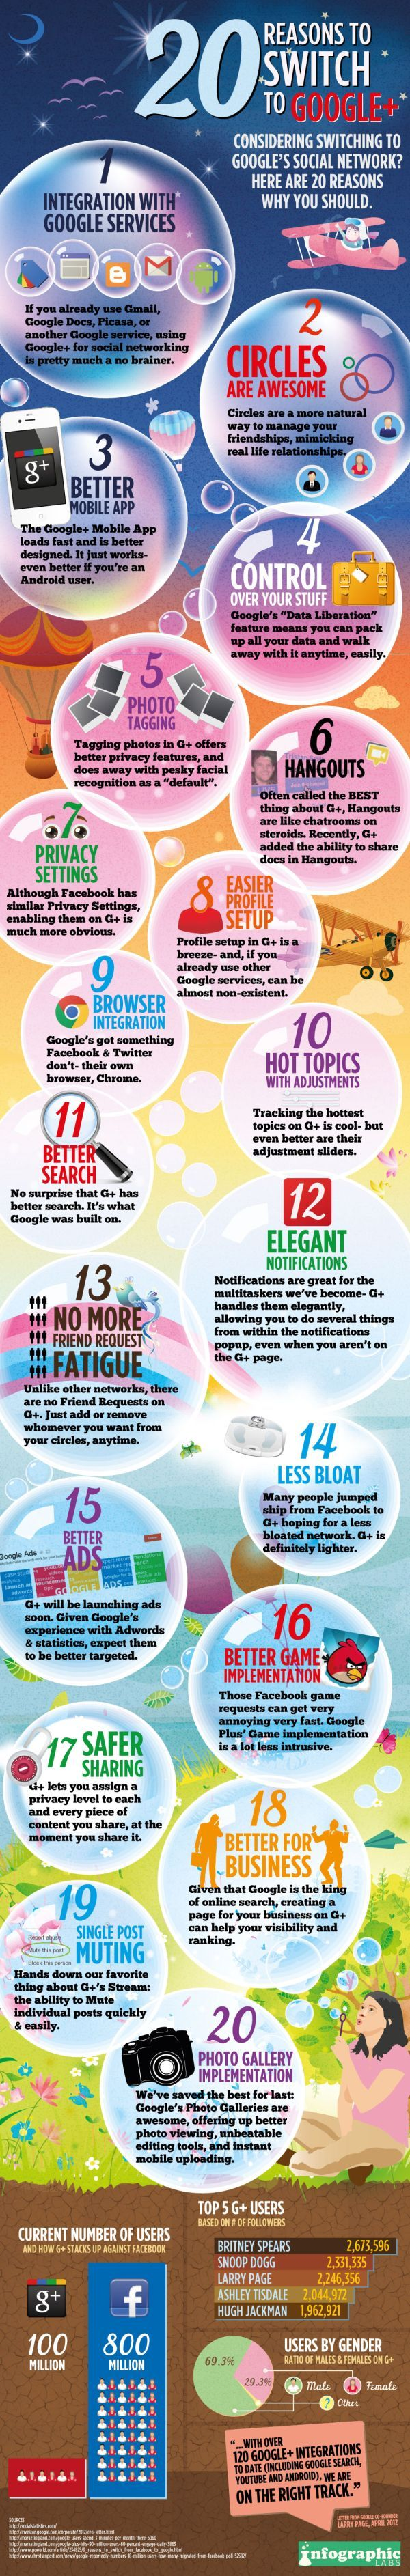 20 #Reasons to switch to #Google+ | infographiclabs.com